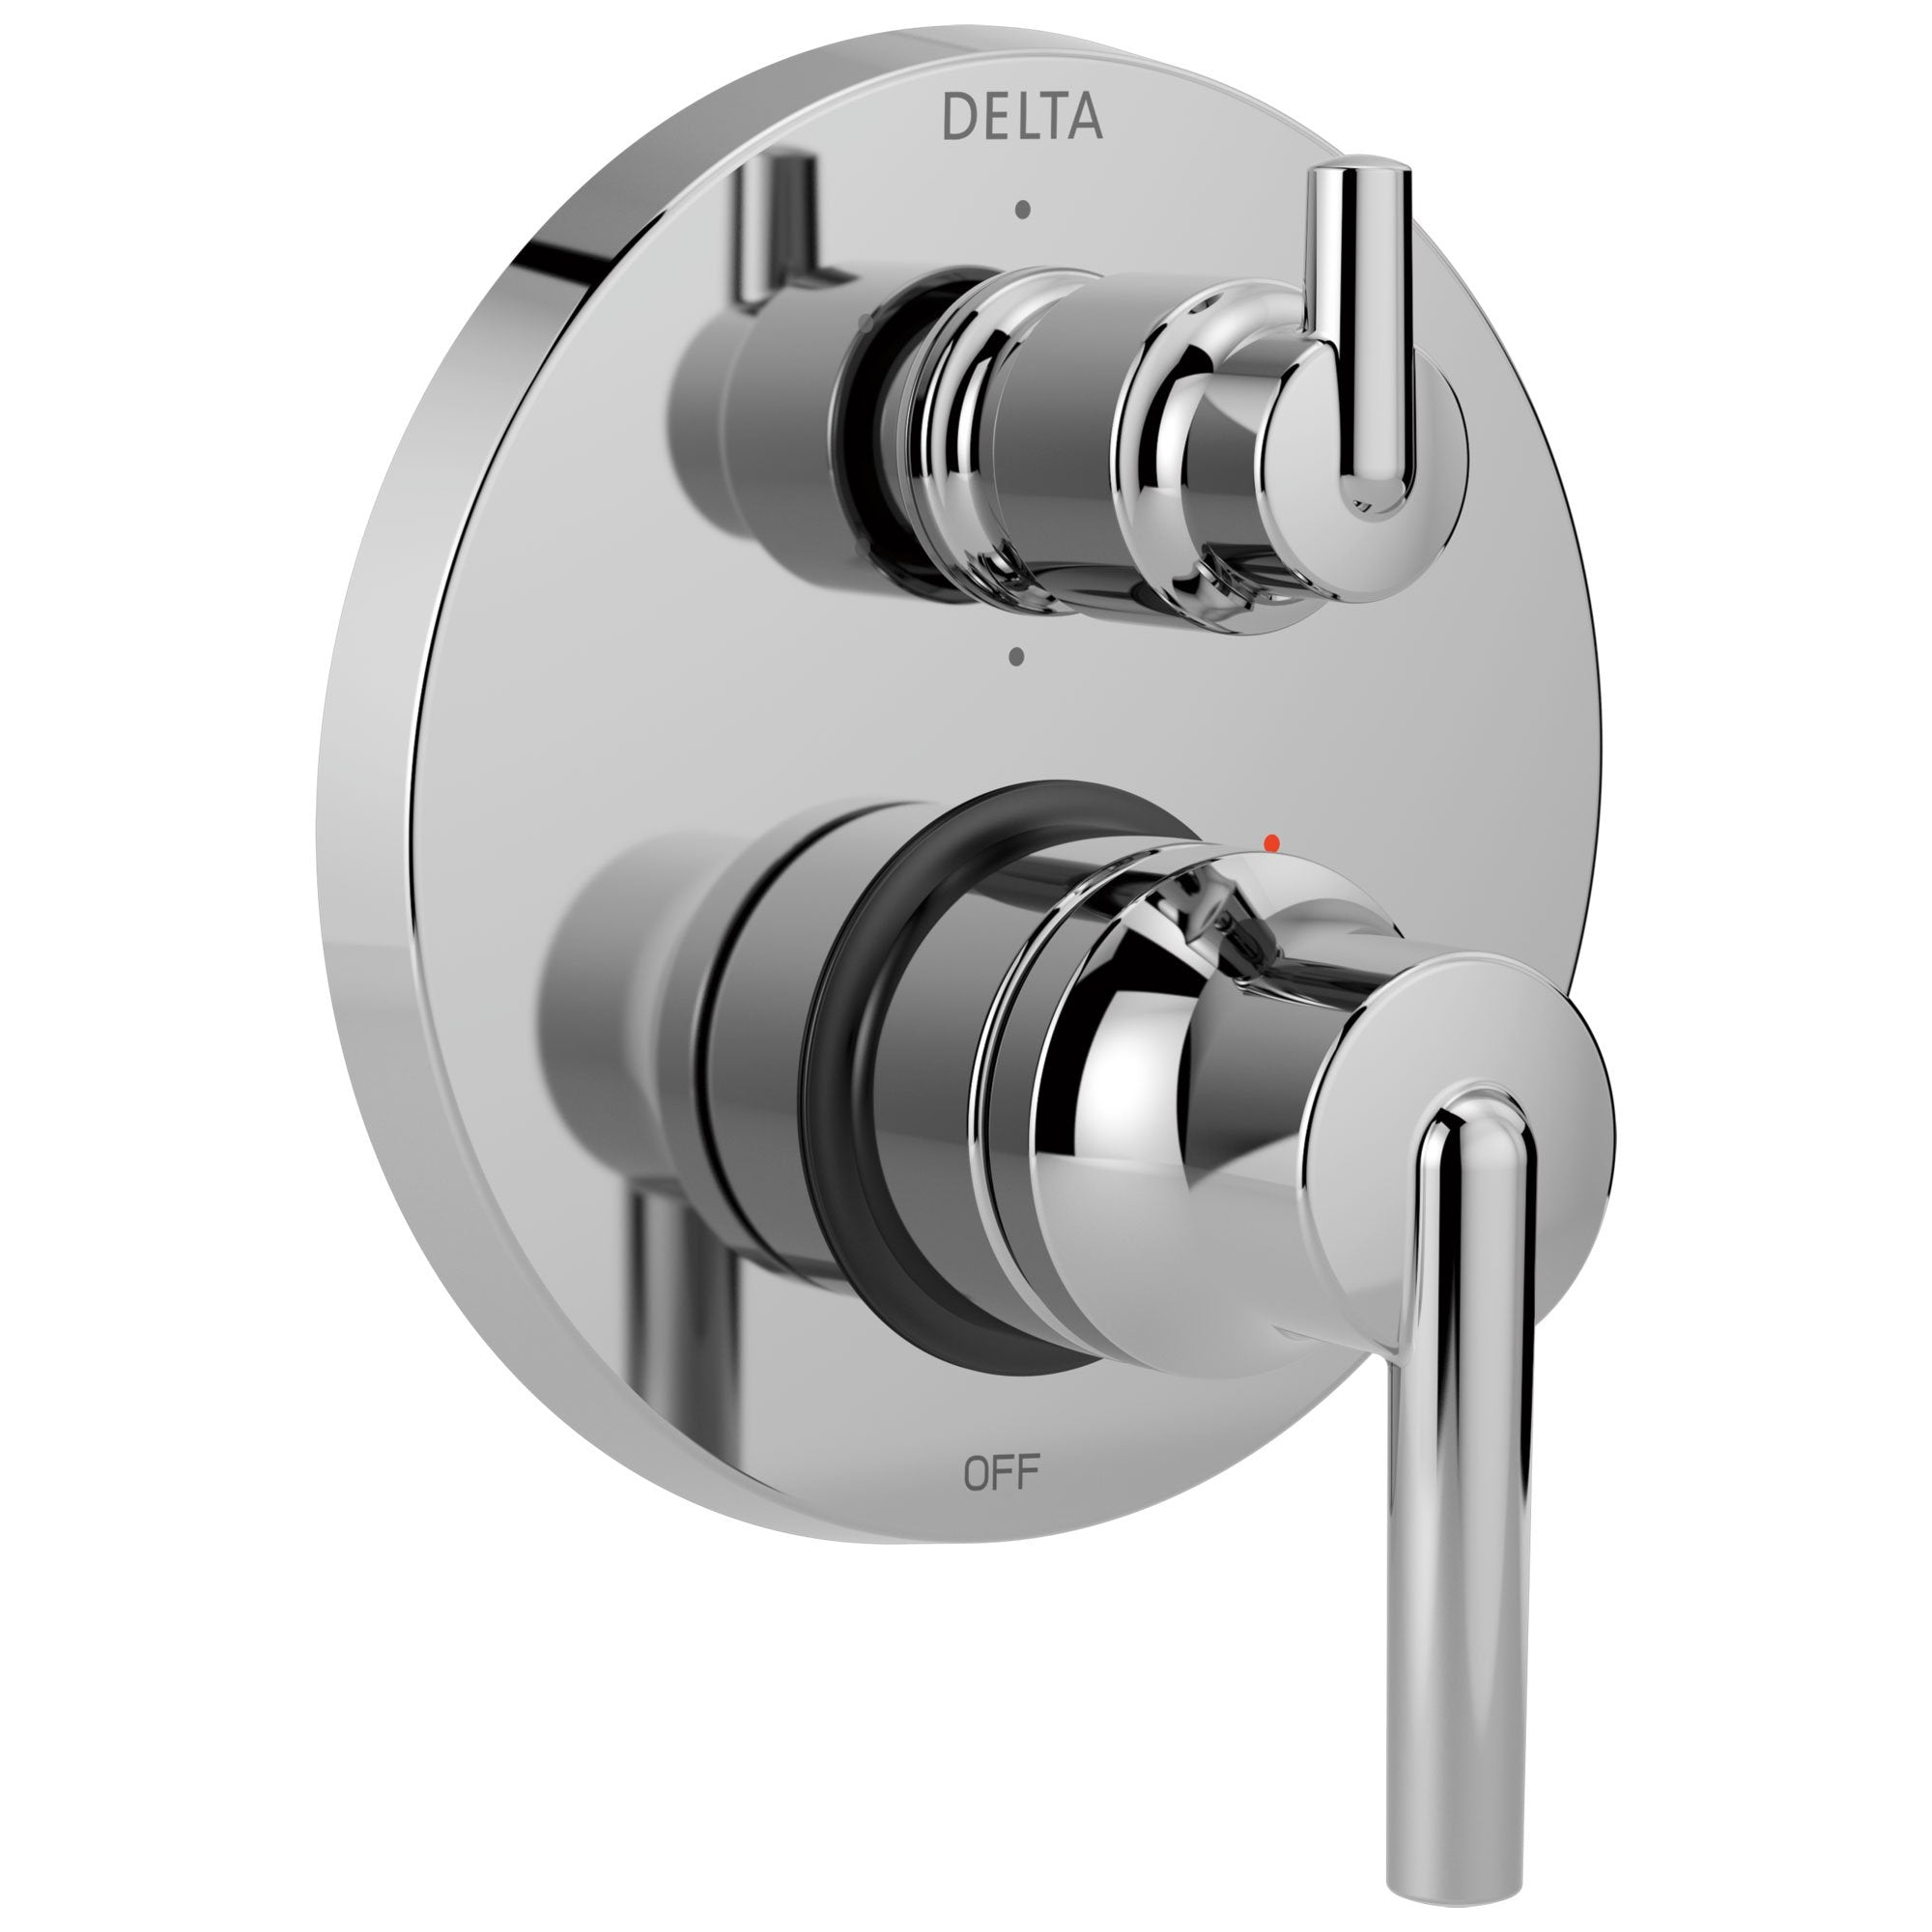 Delta Trinsic Chrome Contemporary Monitor 14 Shower Faucet Control Handle with 6-Setting Integrated Diverter Includes Trim Kit and Valve with Stops D2201V